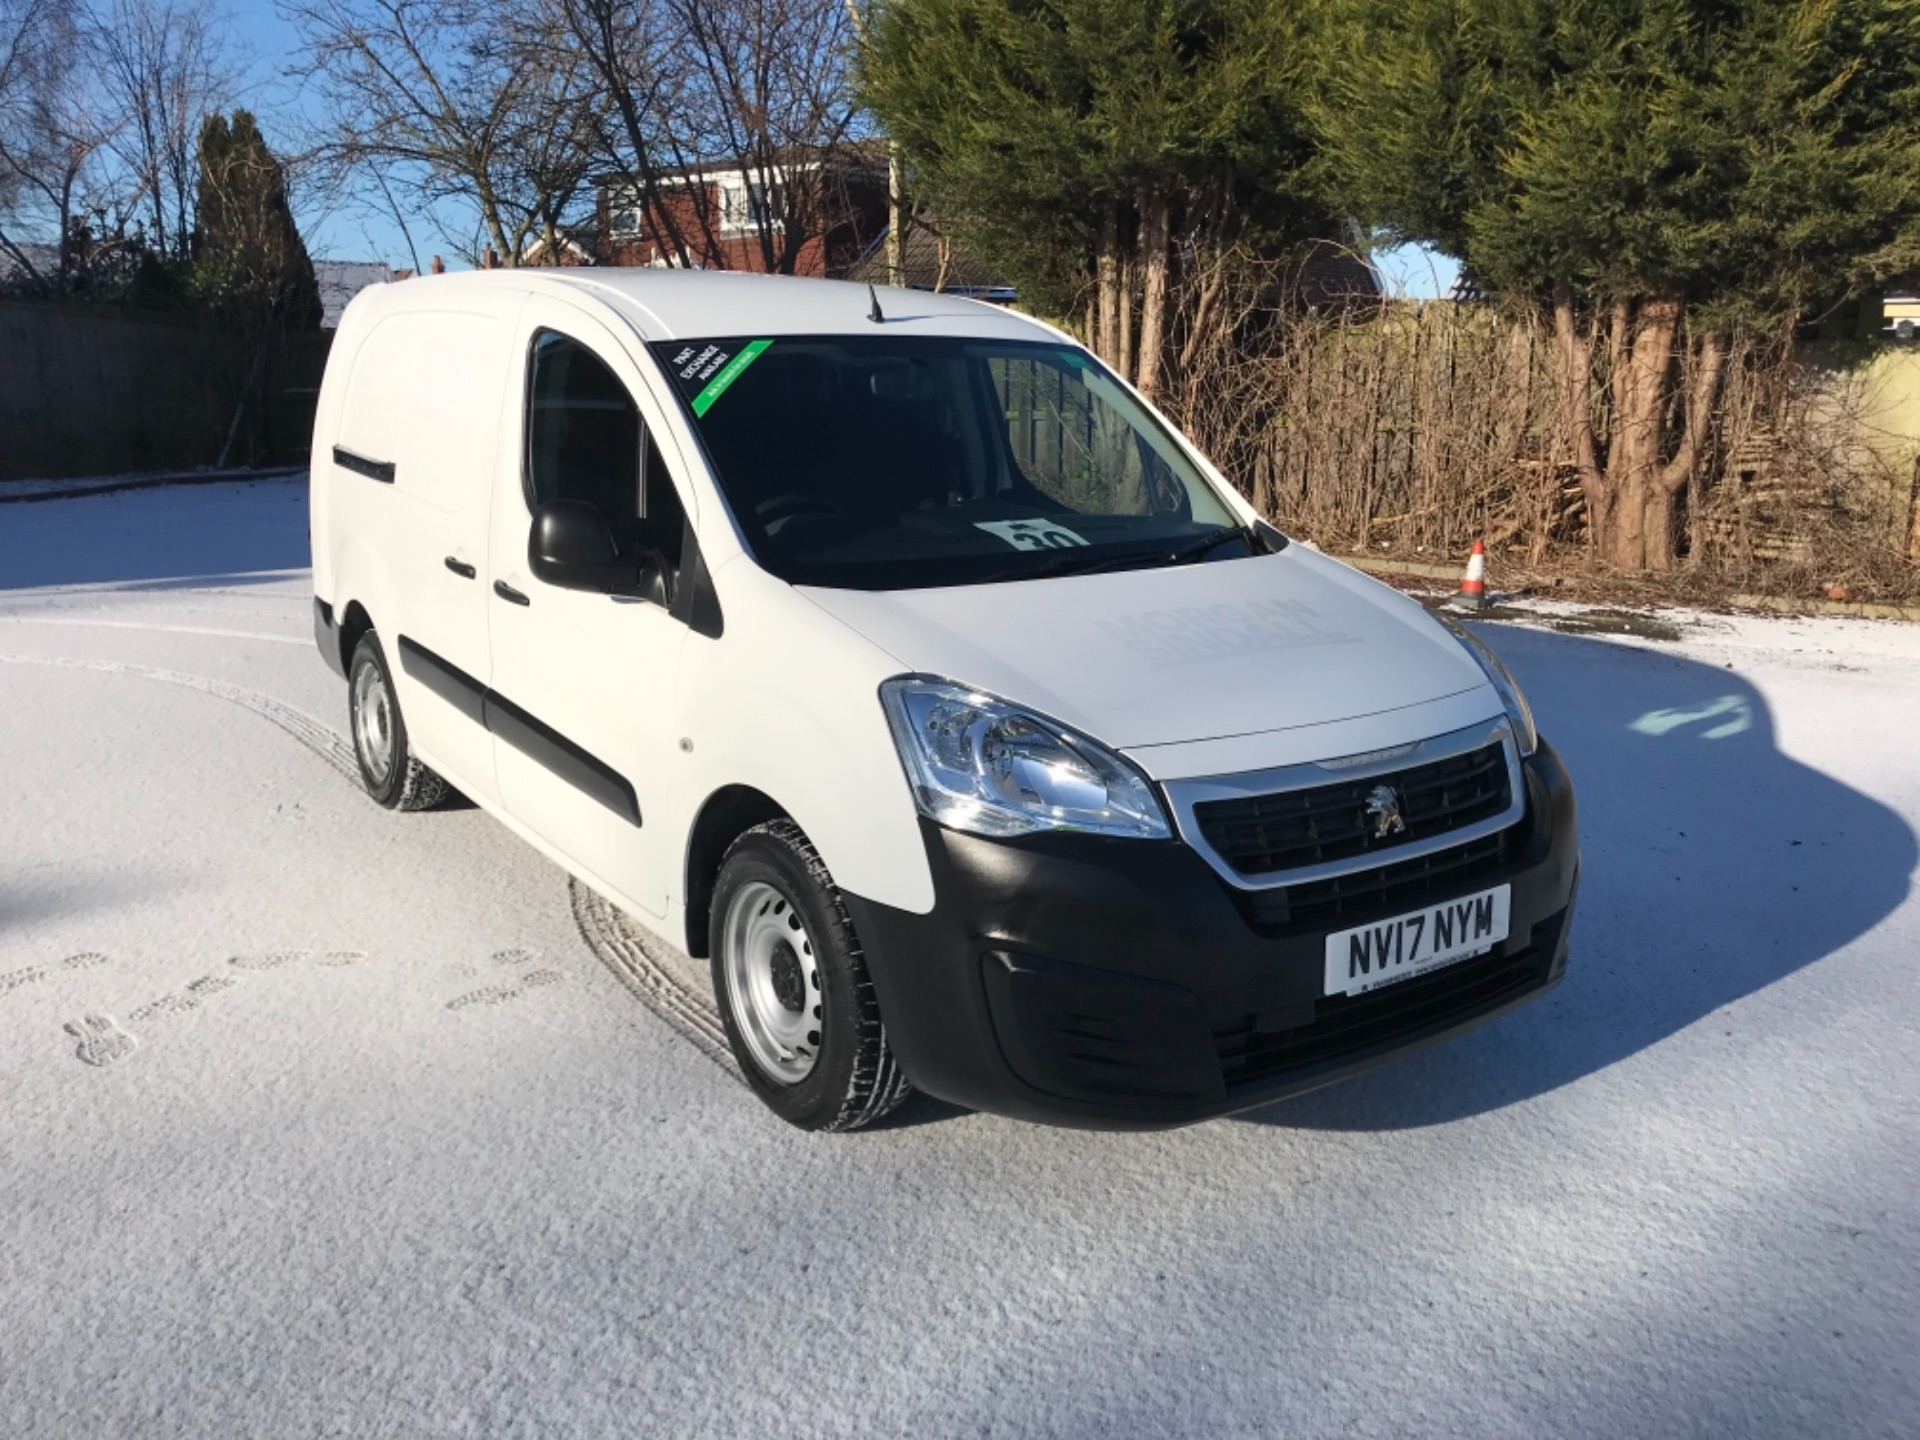 2017 Peugeot Partner L2 715 S 1.6 Bluehdi 100 Crew Van Euro 6  *70 MPH SPEED RESTRICTED (NV17NYM) Image 1